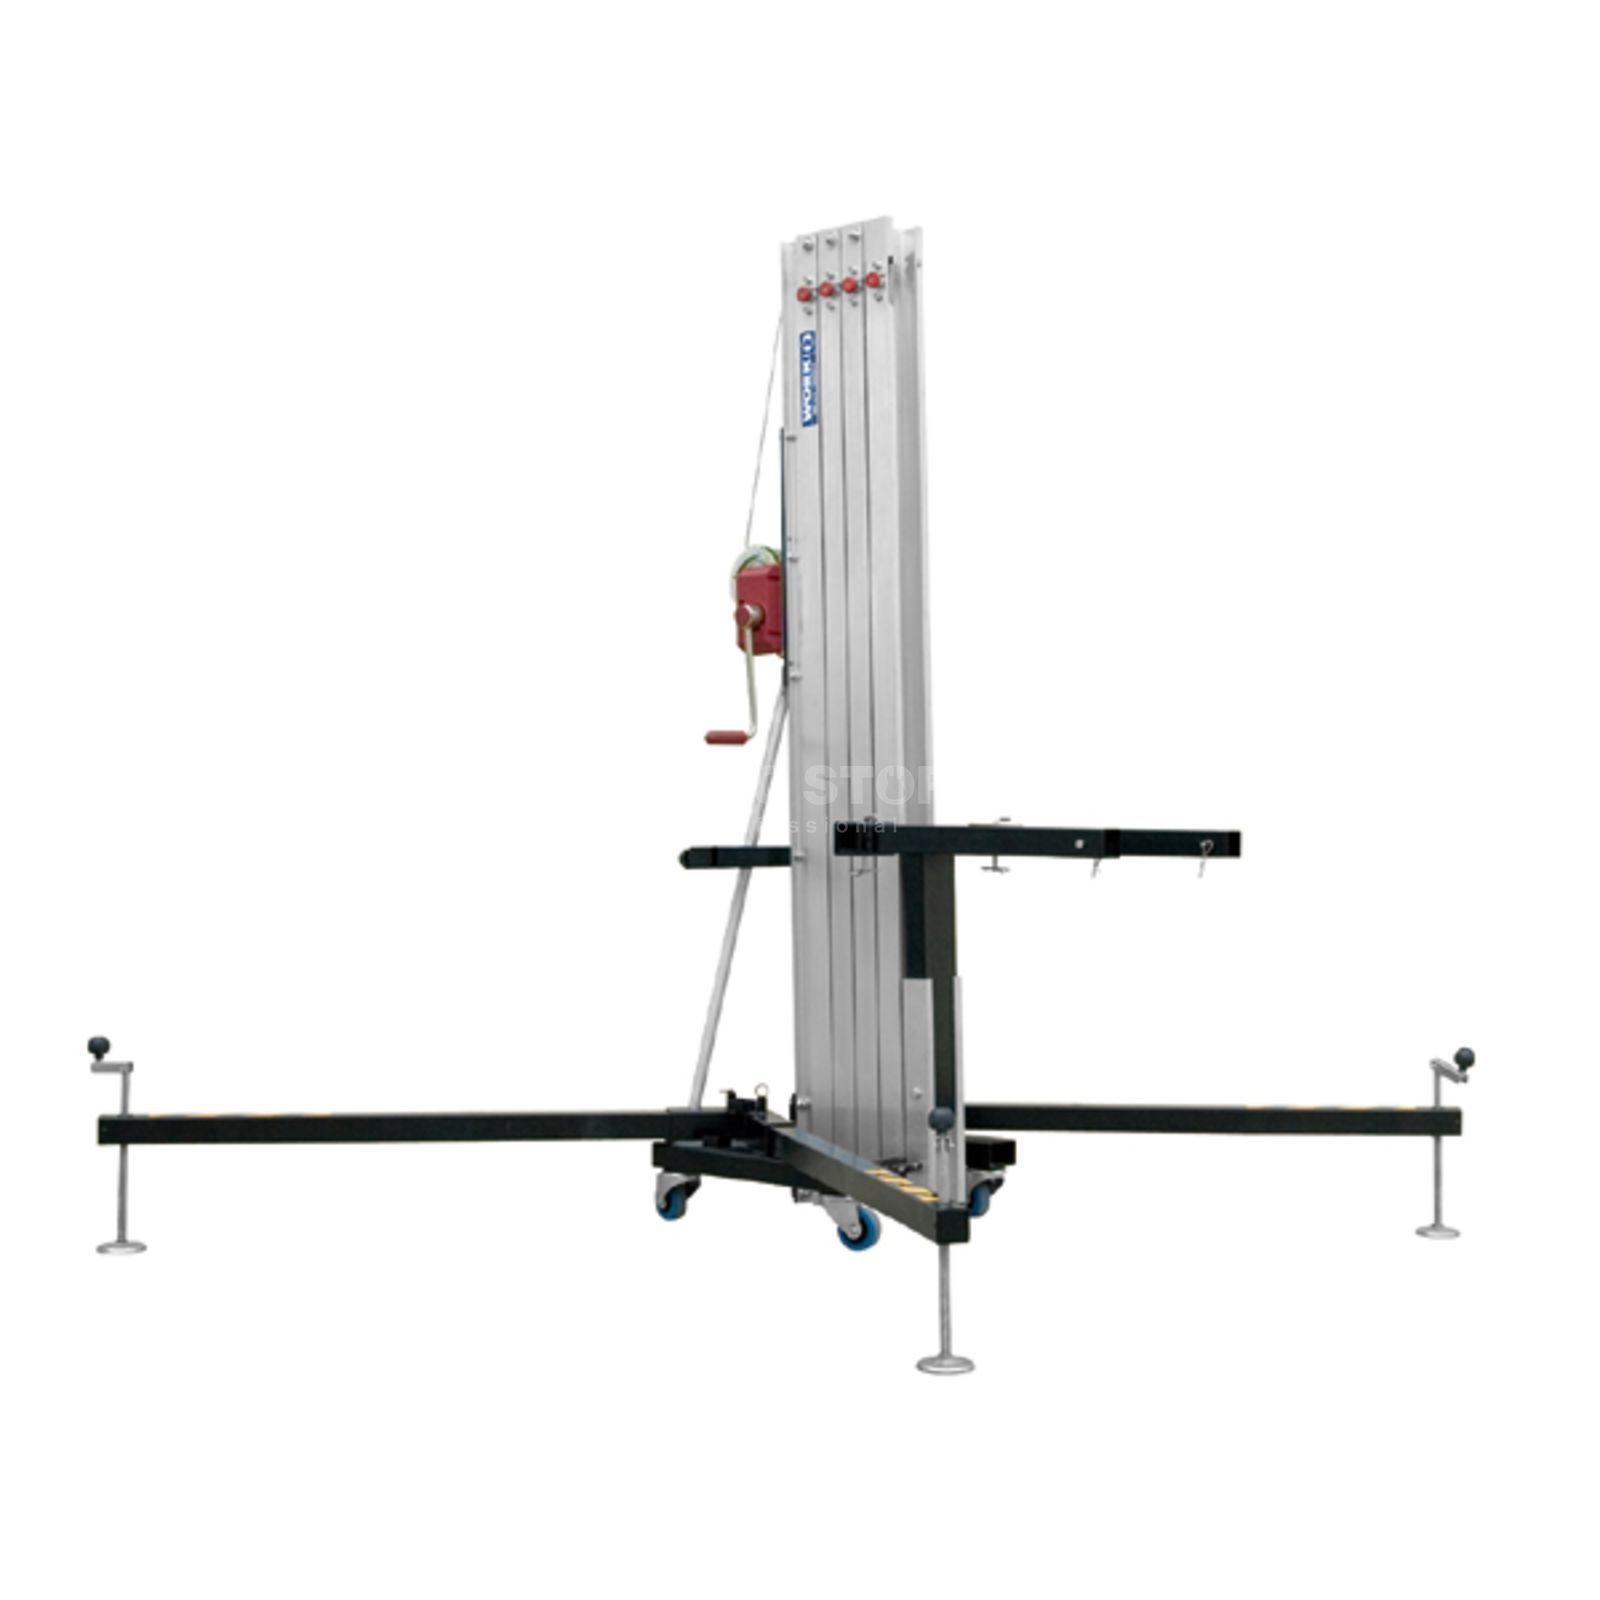 Work LW 425 R Traversenlift 150kg, 6,5m BGV C1 Product Image